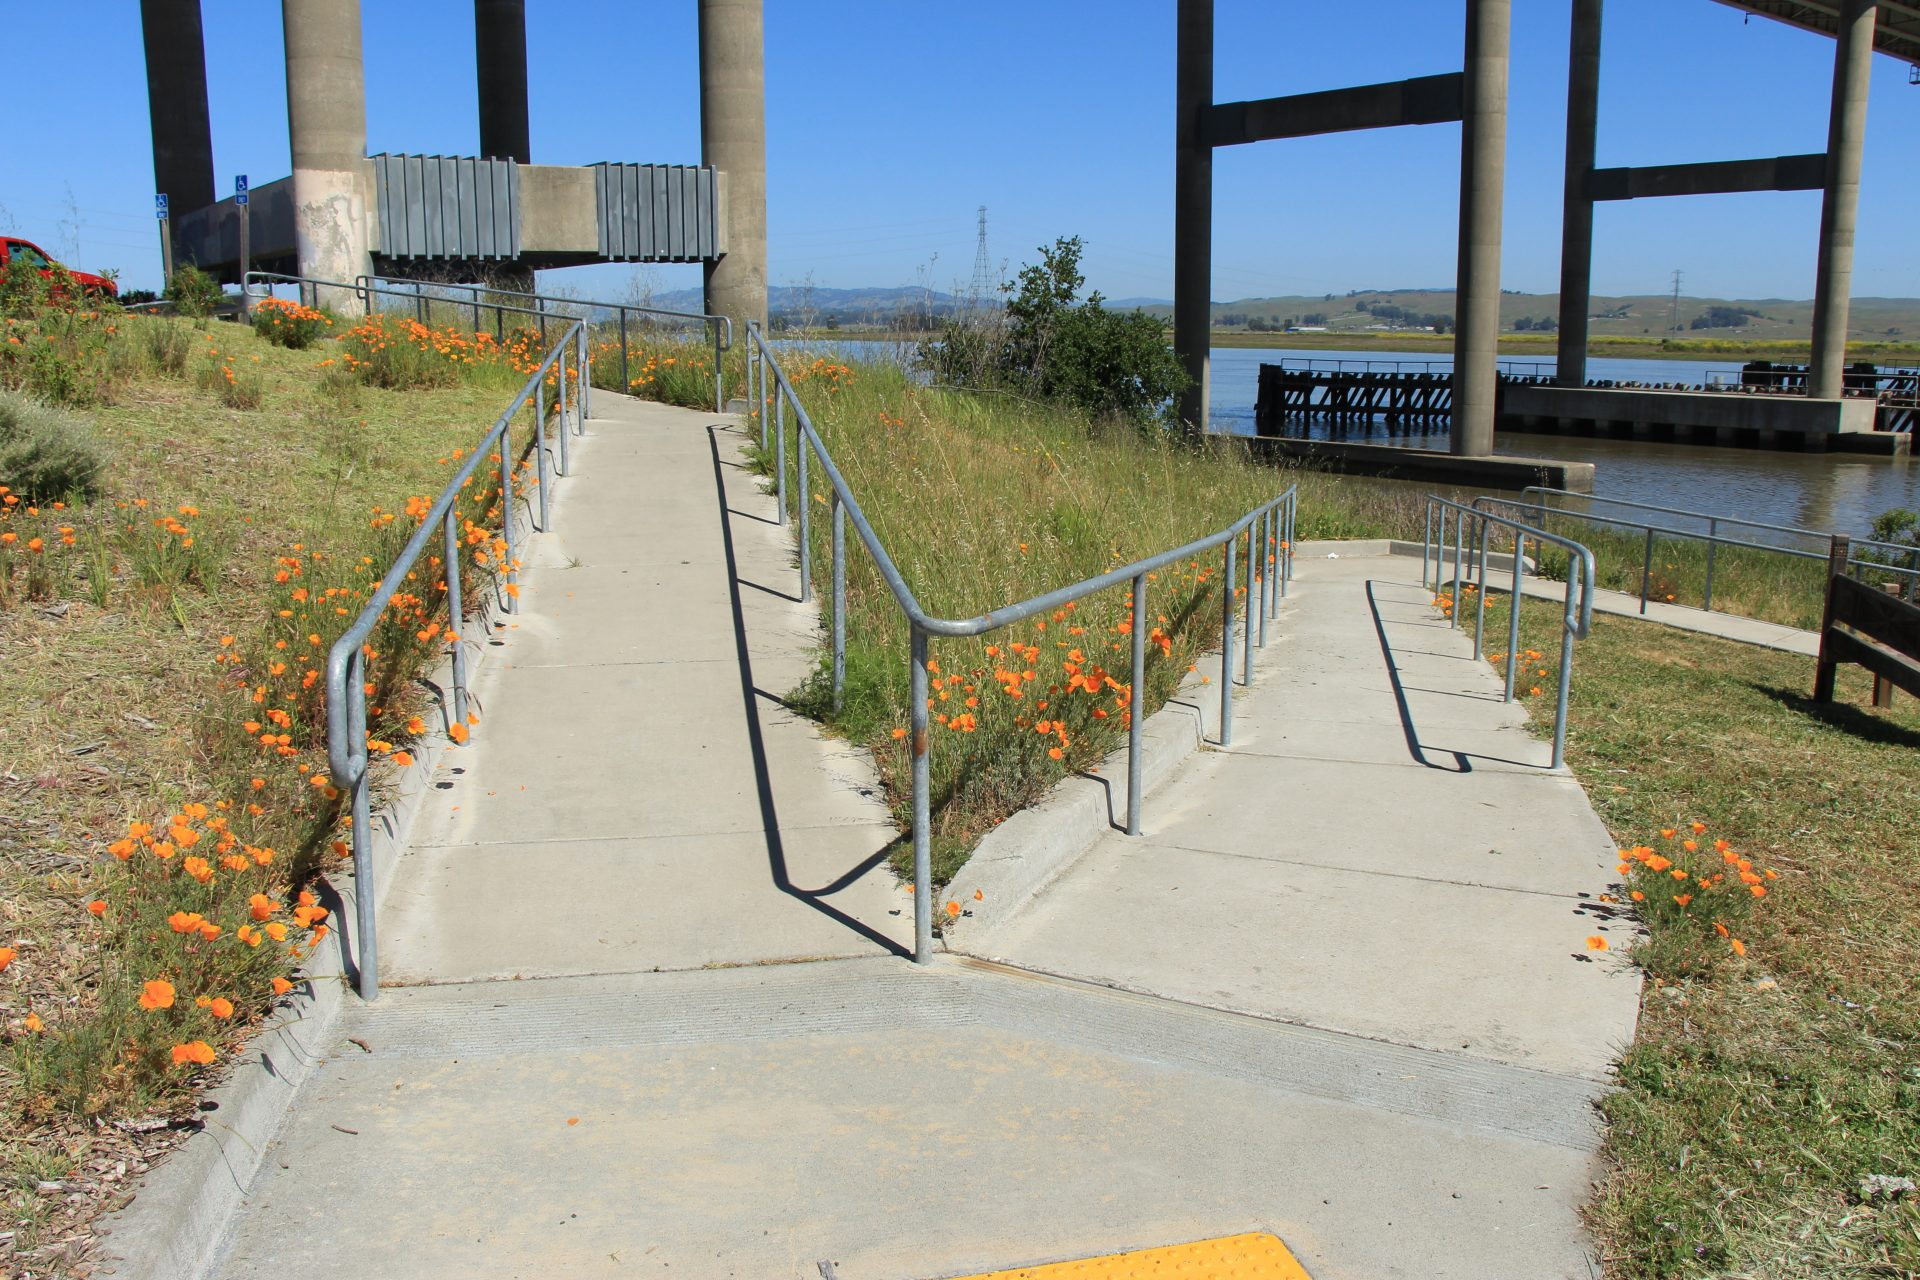 Paved ramp descending hillside, with poppies blooming